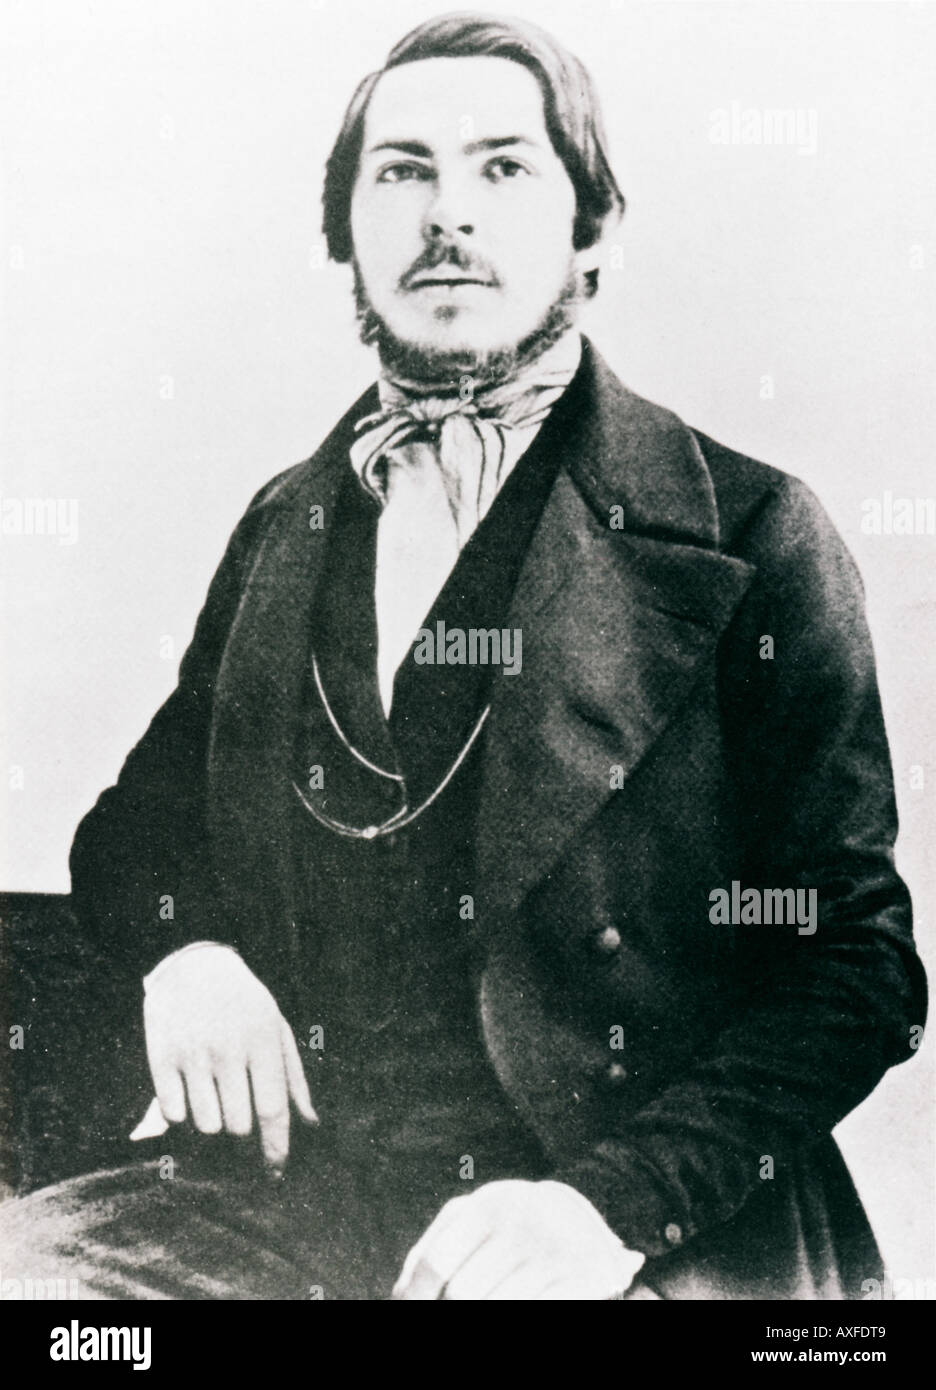 Friedrich Engels, 1845 portrait of the Communist philosopher and patron aged 25 while living and working in EnglandStock Photo